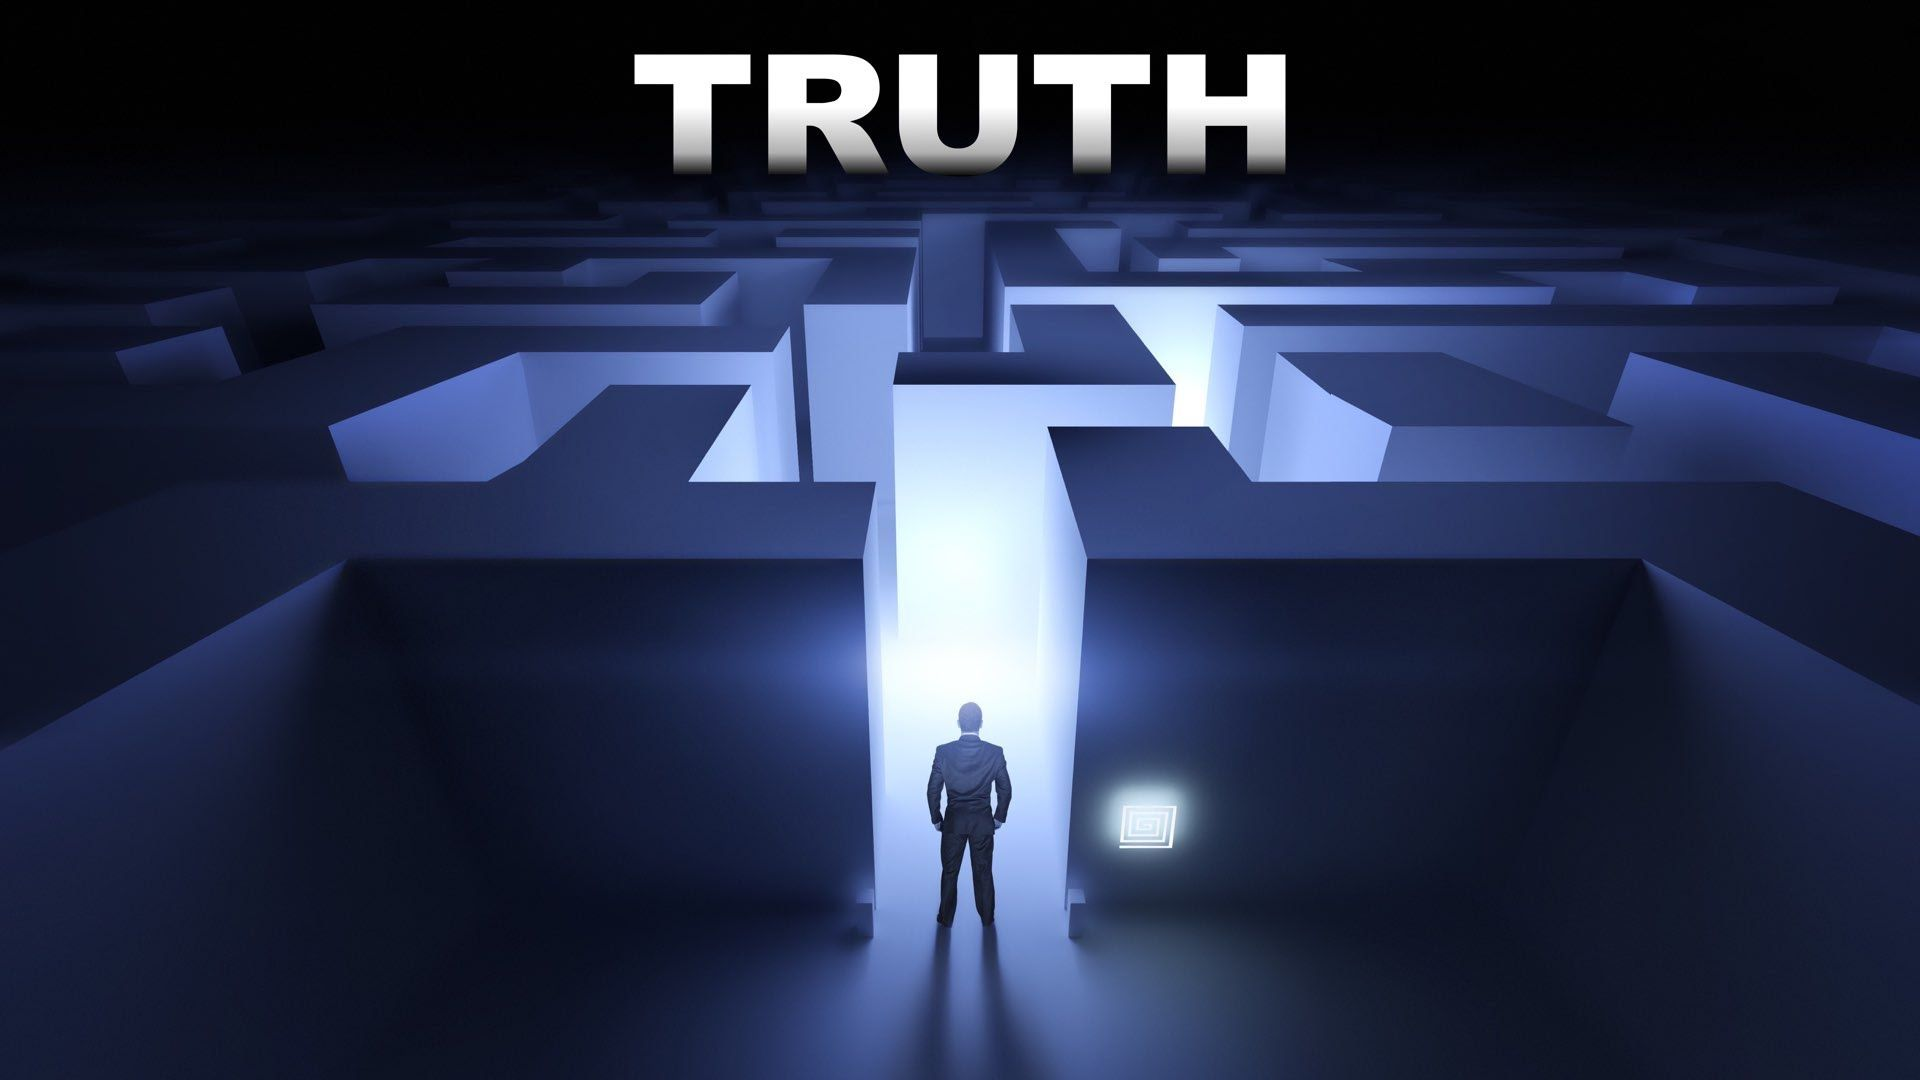 CHRISTIANITY, ISLAM, & JUDAISM - Where is the truth??